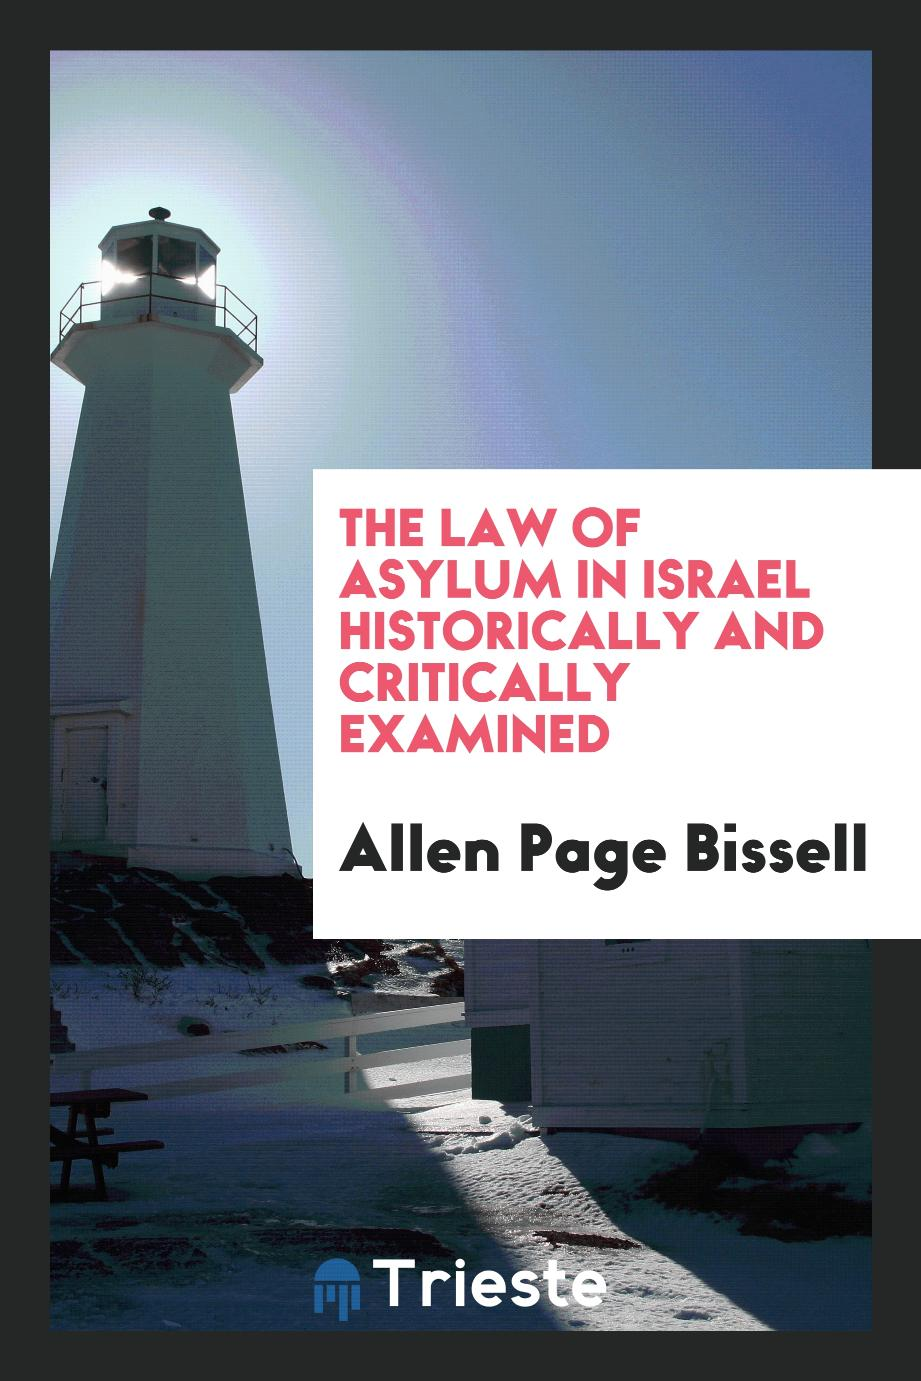 The Law of Asylum in Israel Historically and Critically Examined